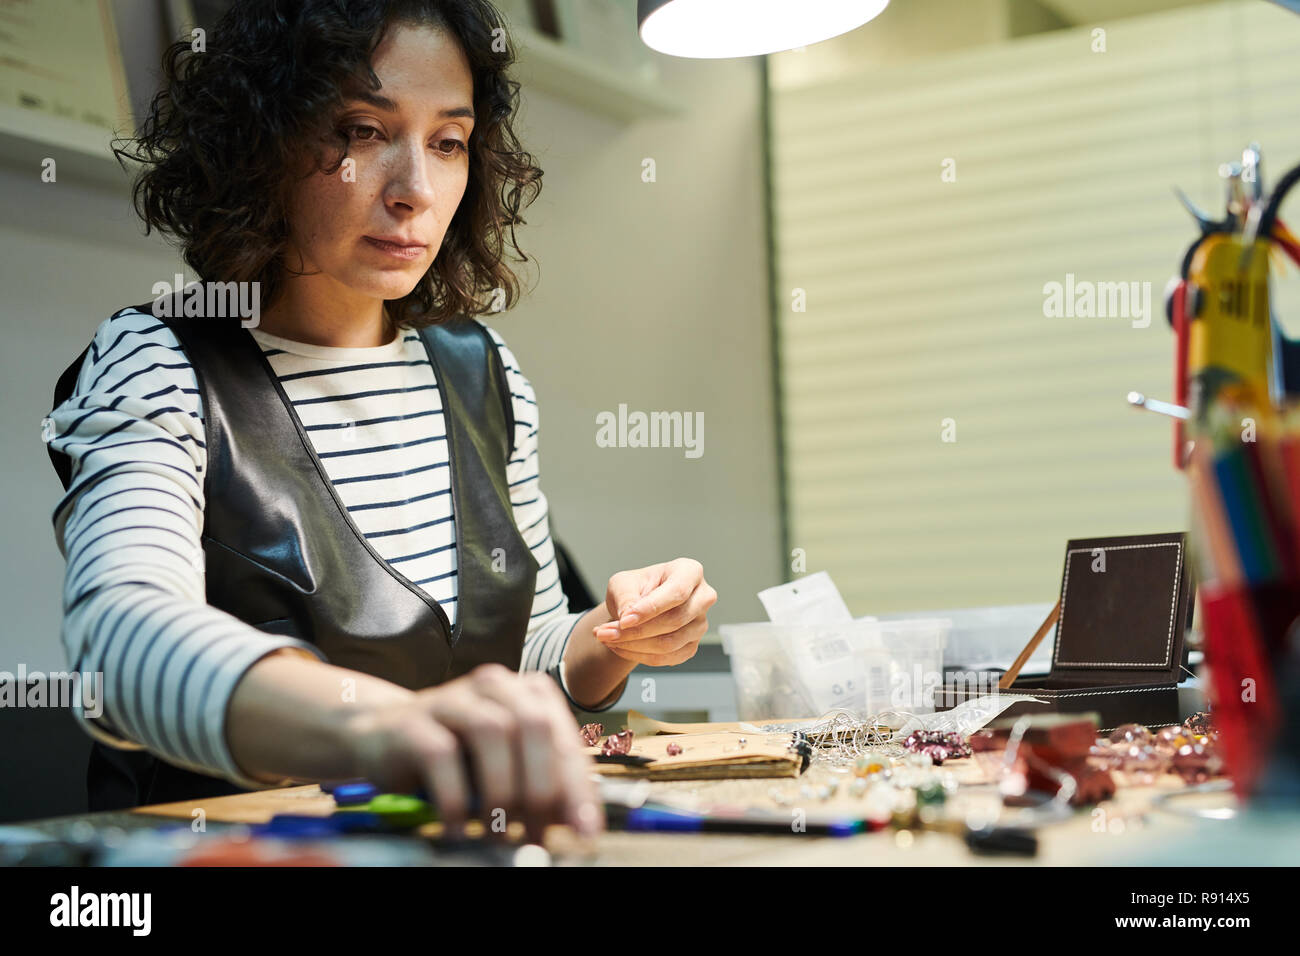 Woman Creating Jewelry - Stock Image